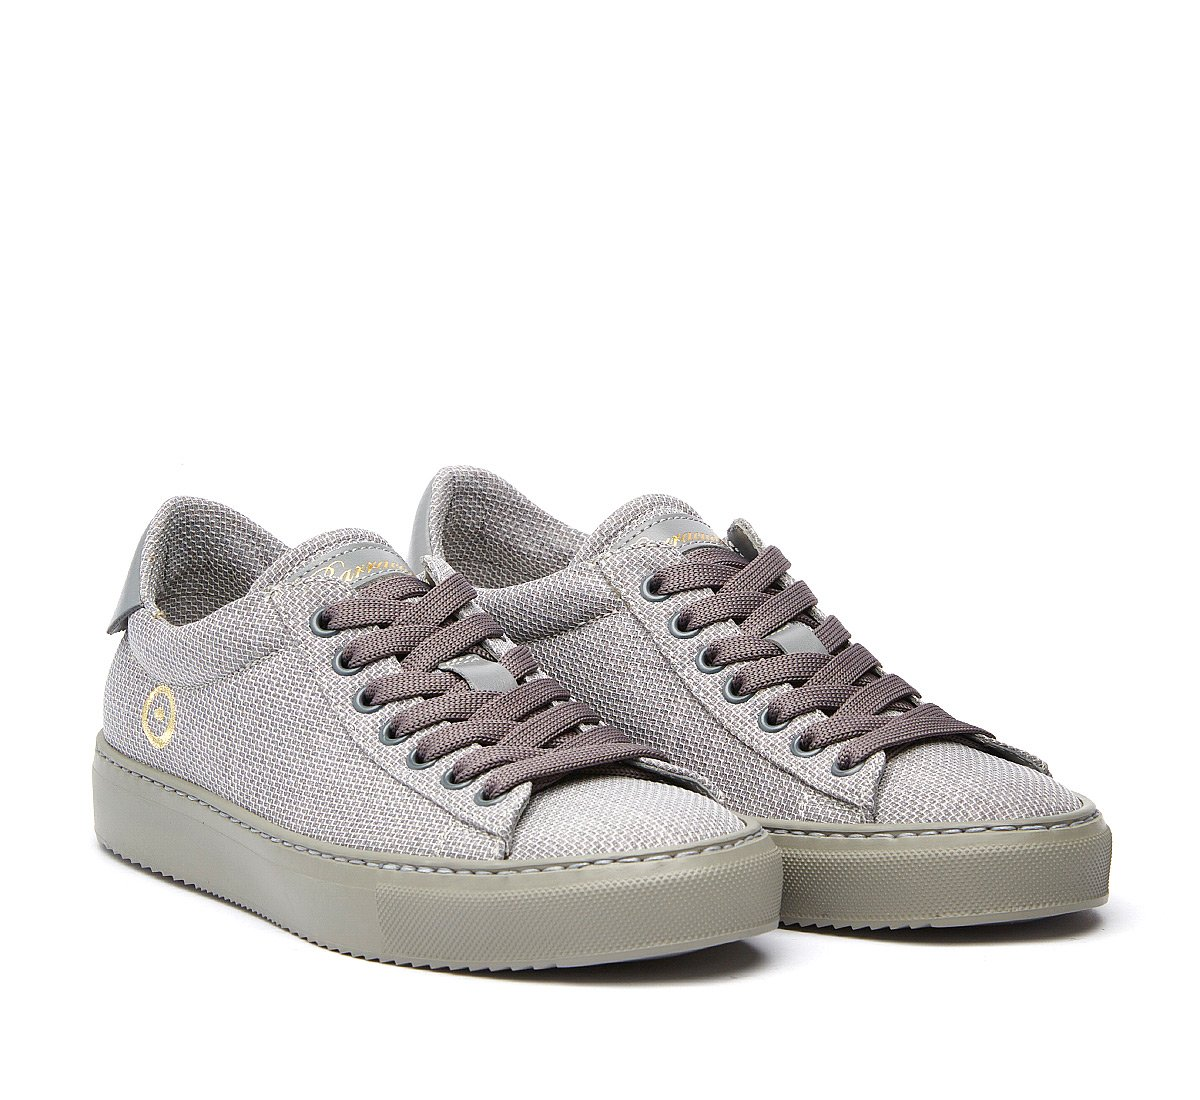 ONLINE EXCLUSIVE - BARRACUDA ICEWOOL SNEAKERS